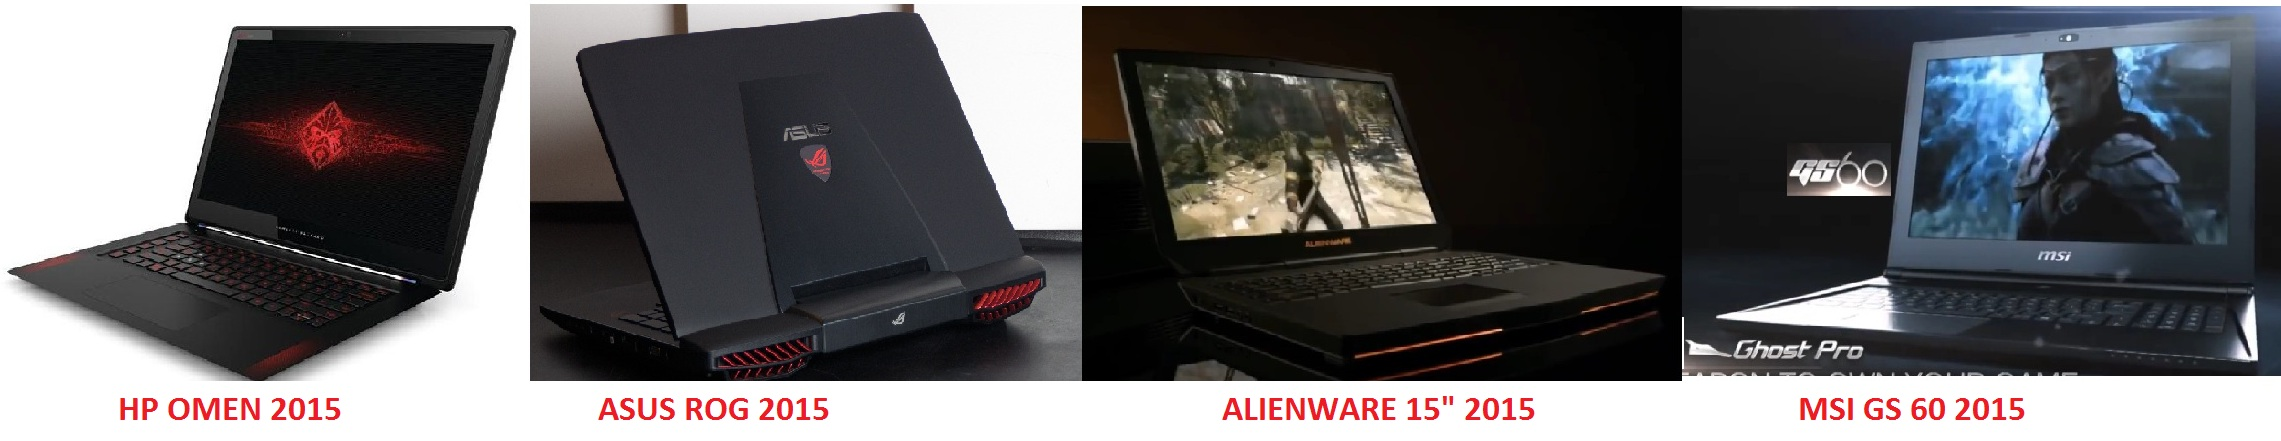 GAMING LAPTOPS 2015